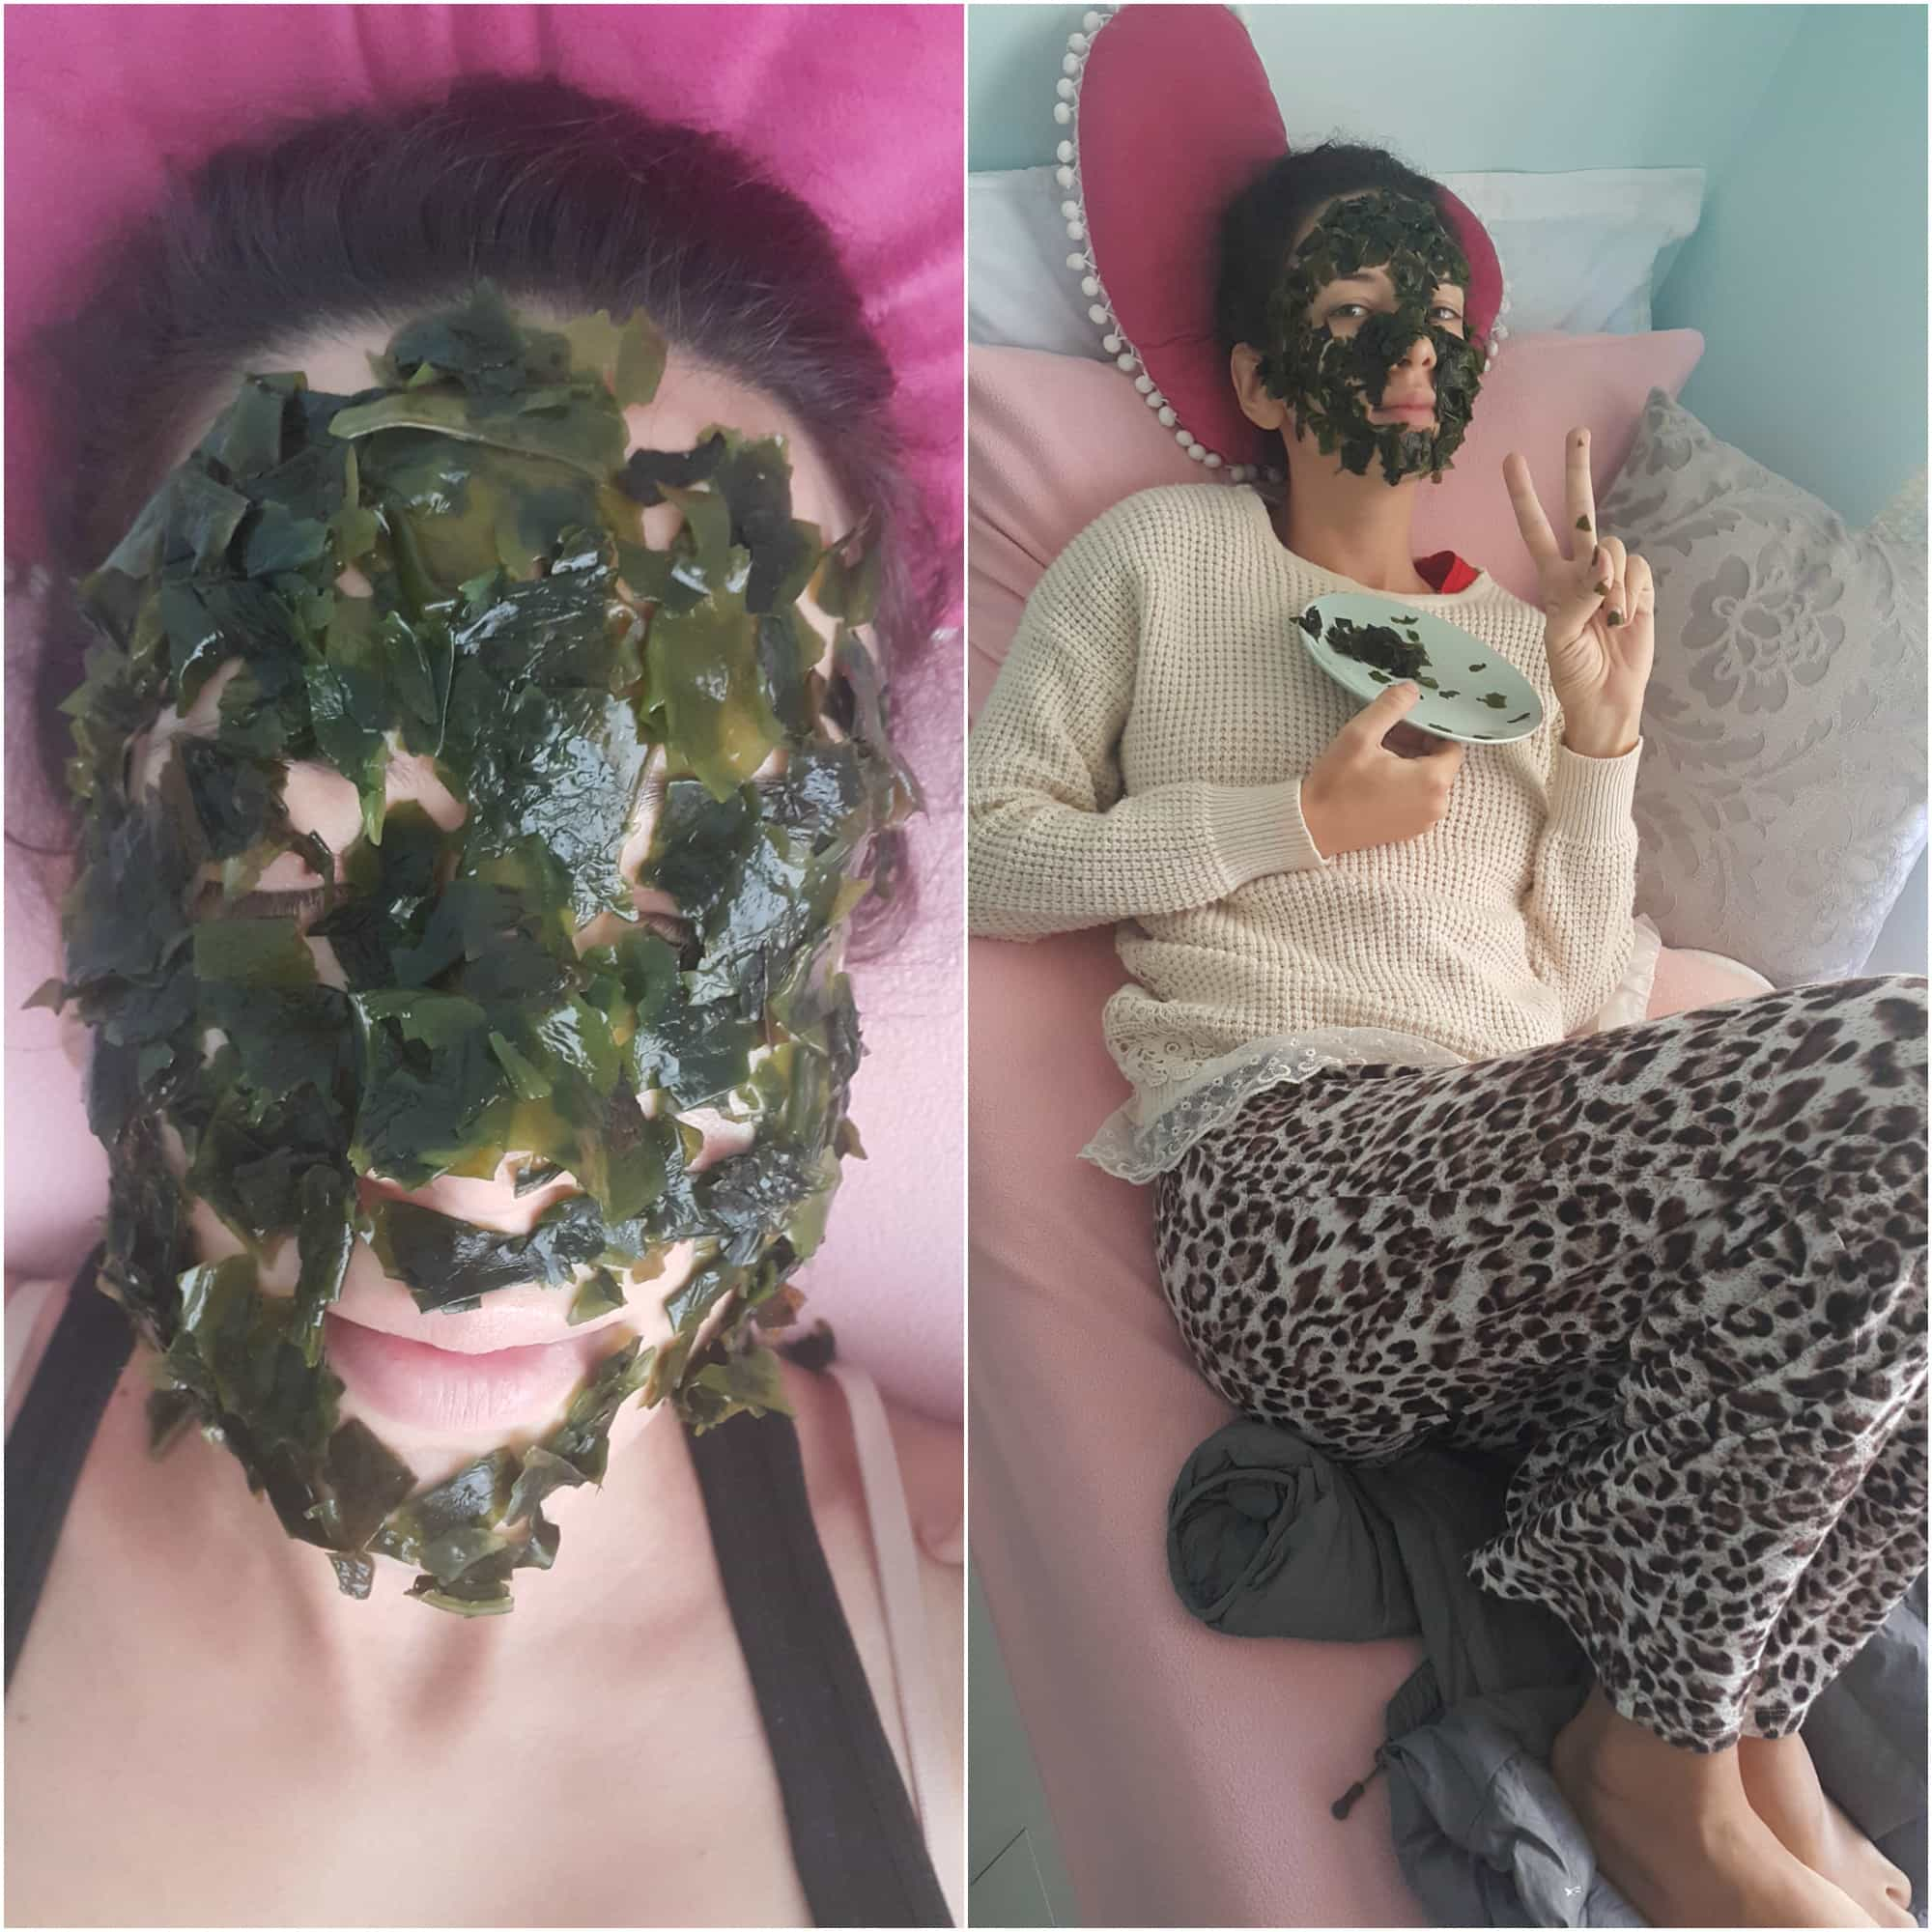 Sea weed mask Collage